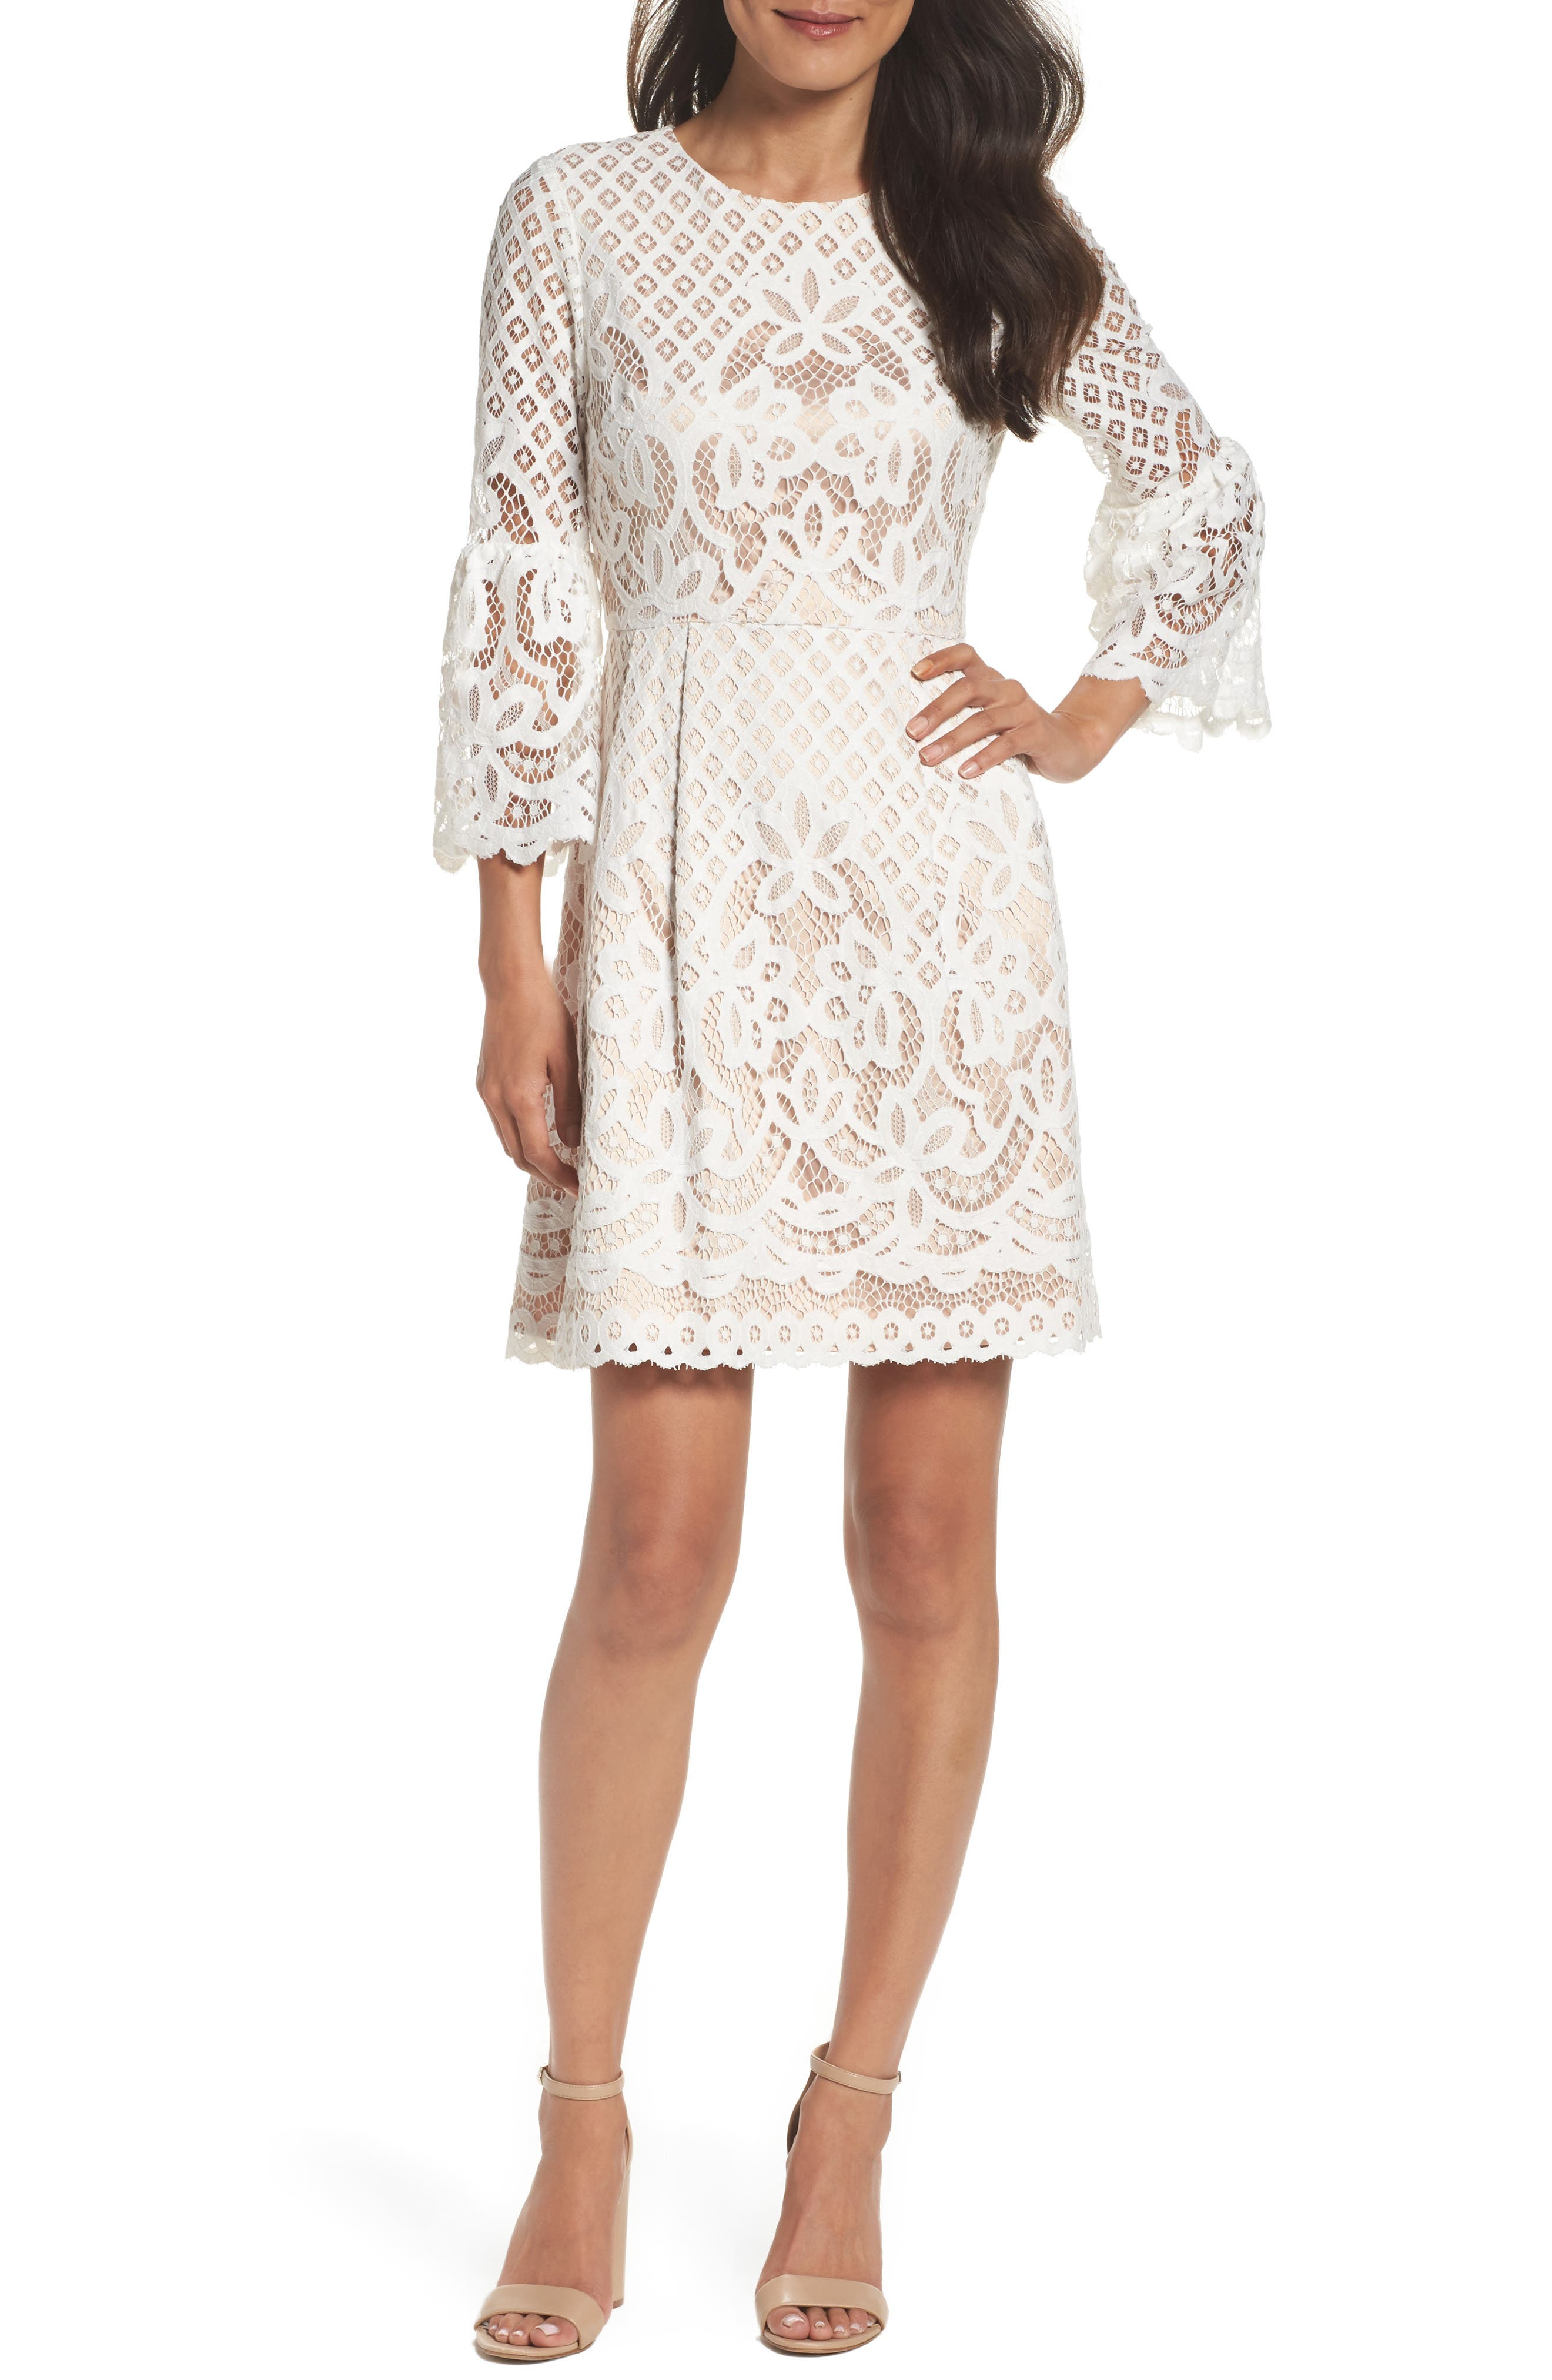 White cocktail dresses pictures